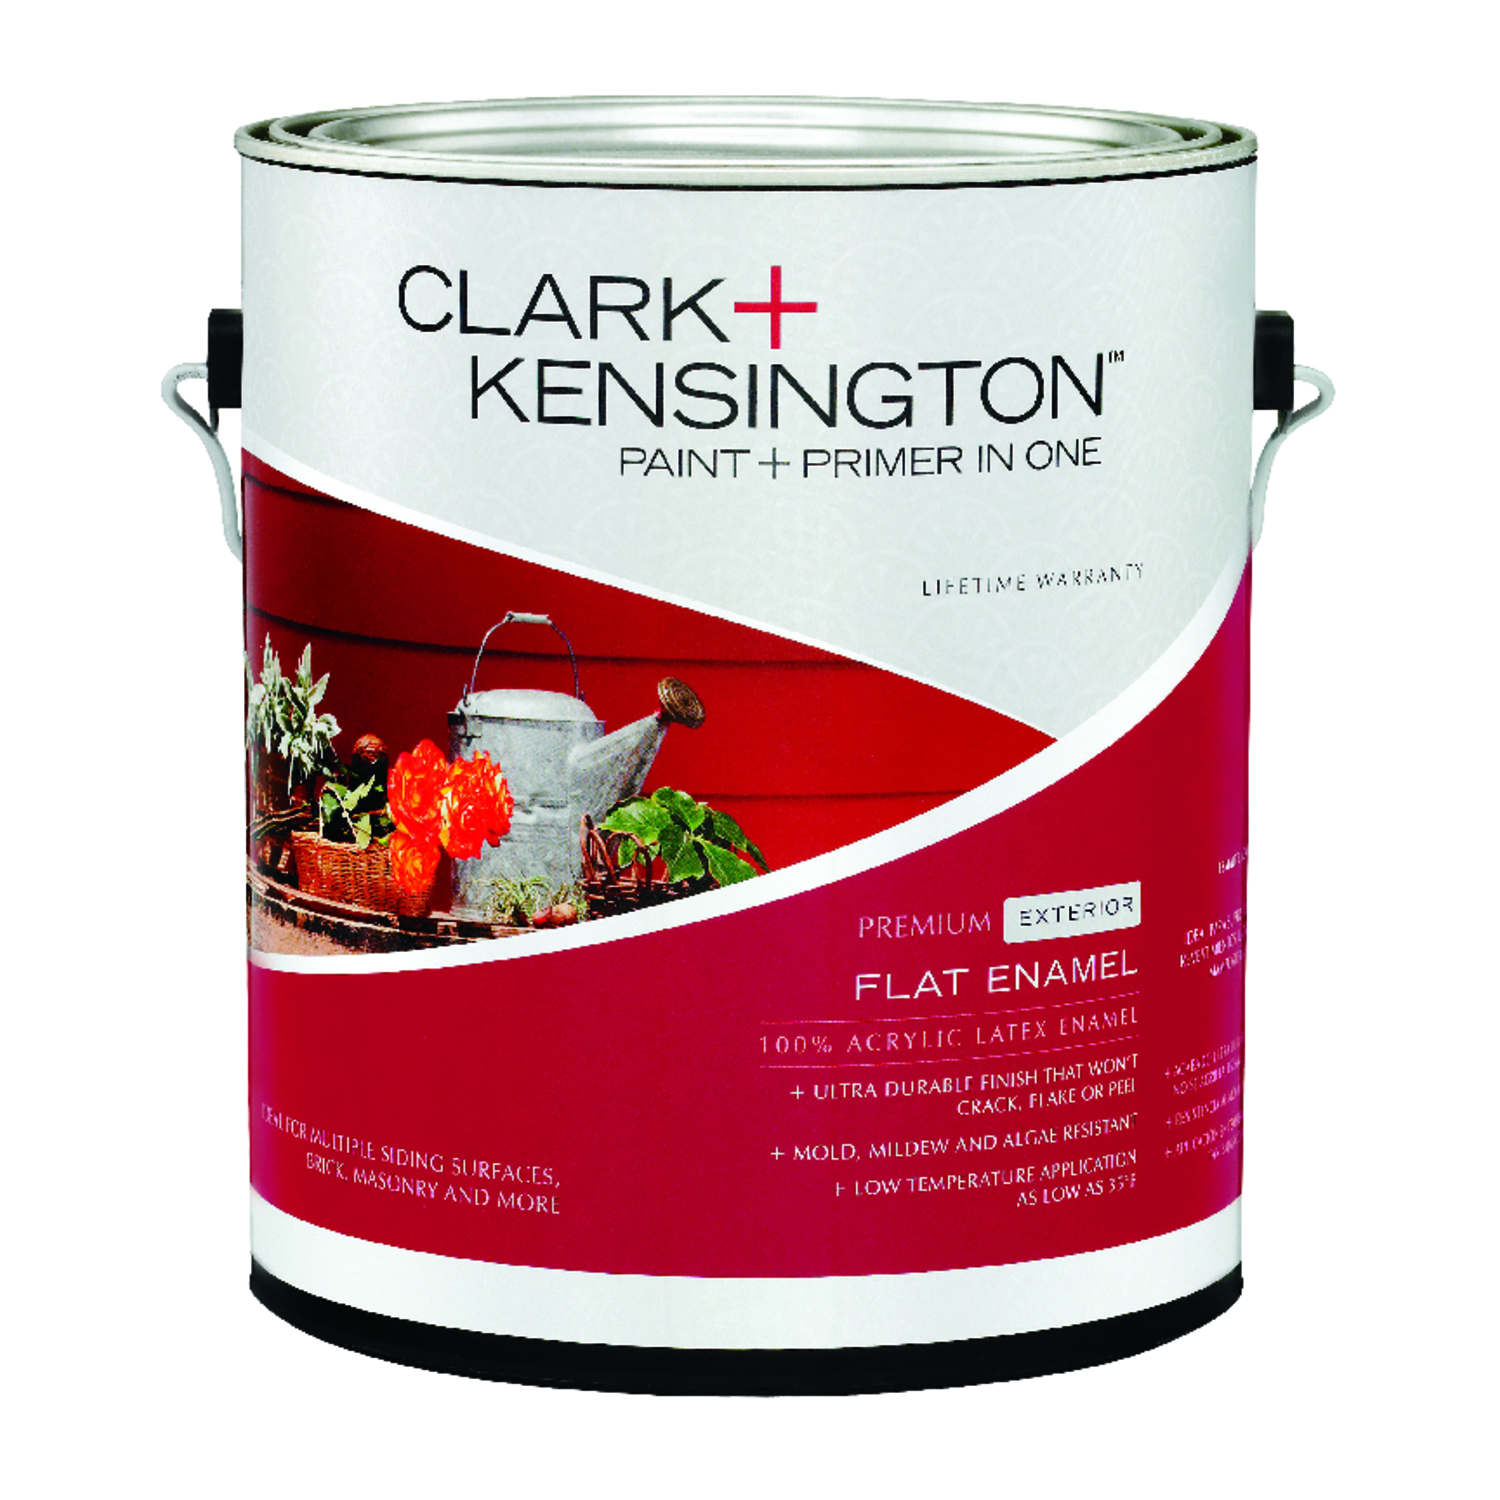 Harga Cat No Drop 2018 Clark Kensington Flat Designer White Acrylic Latex House Paint 1